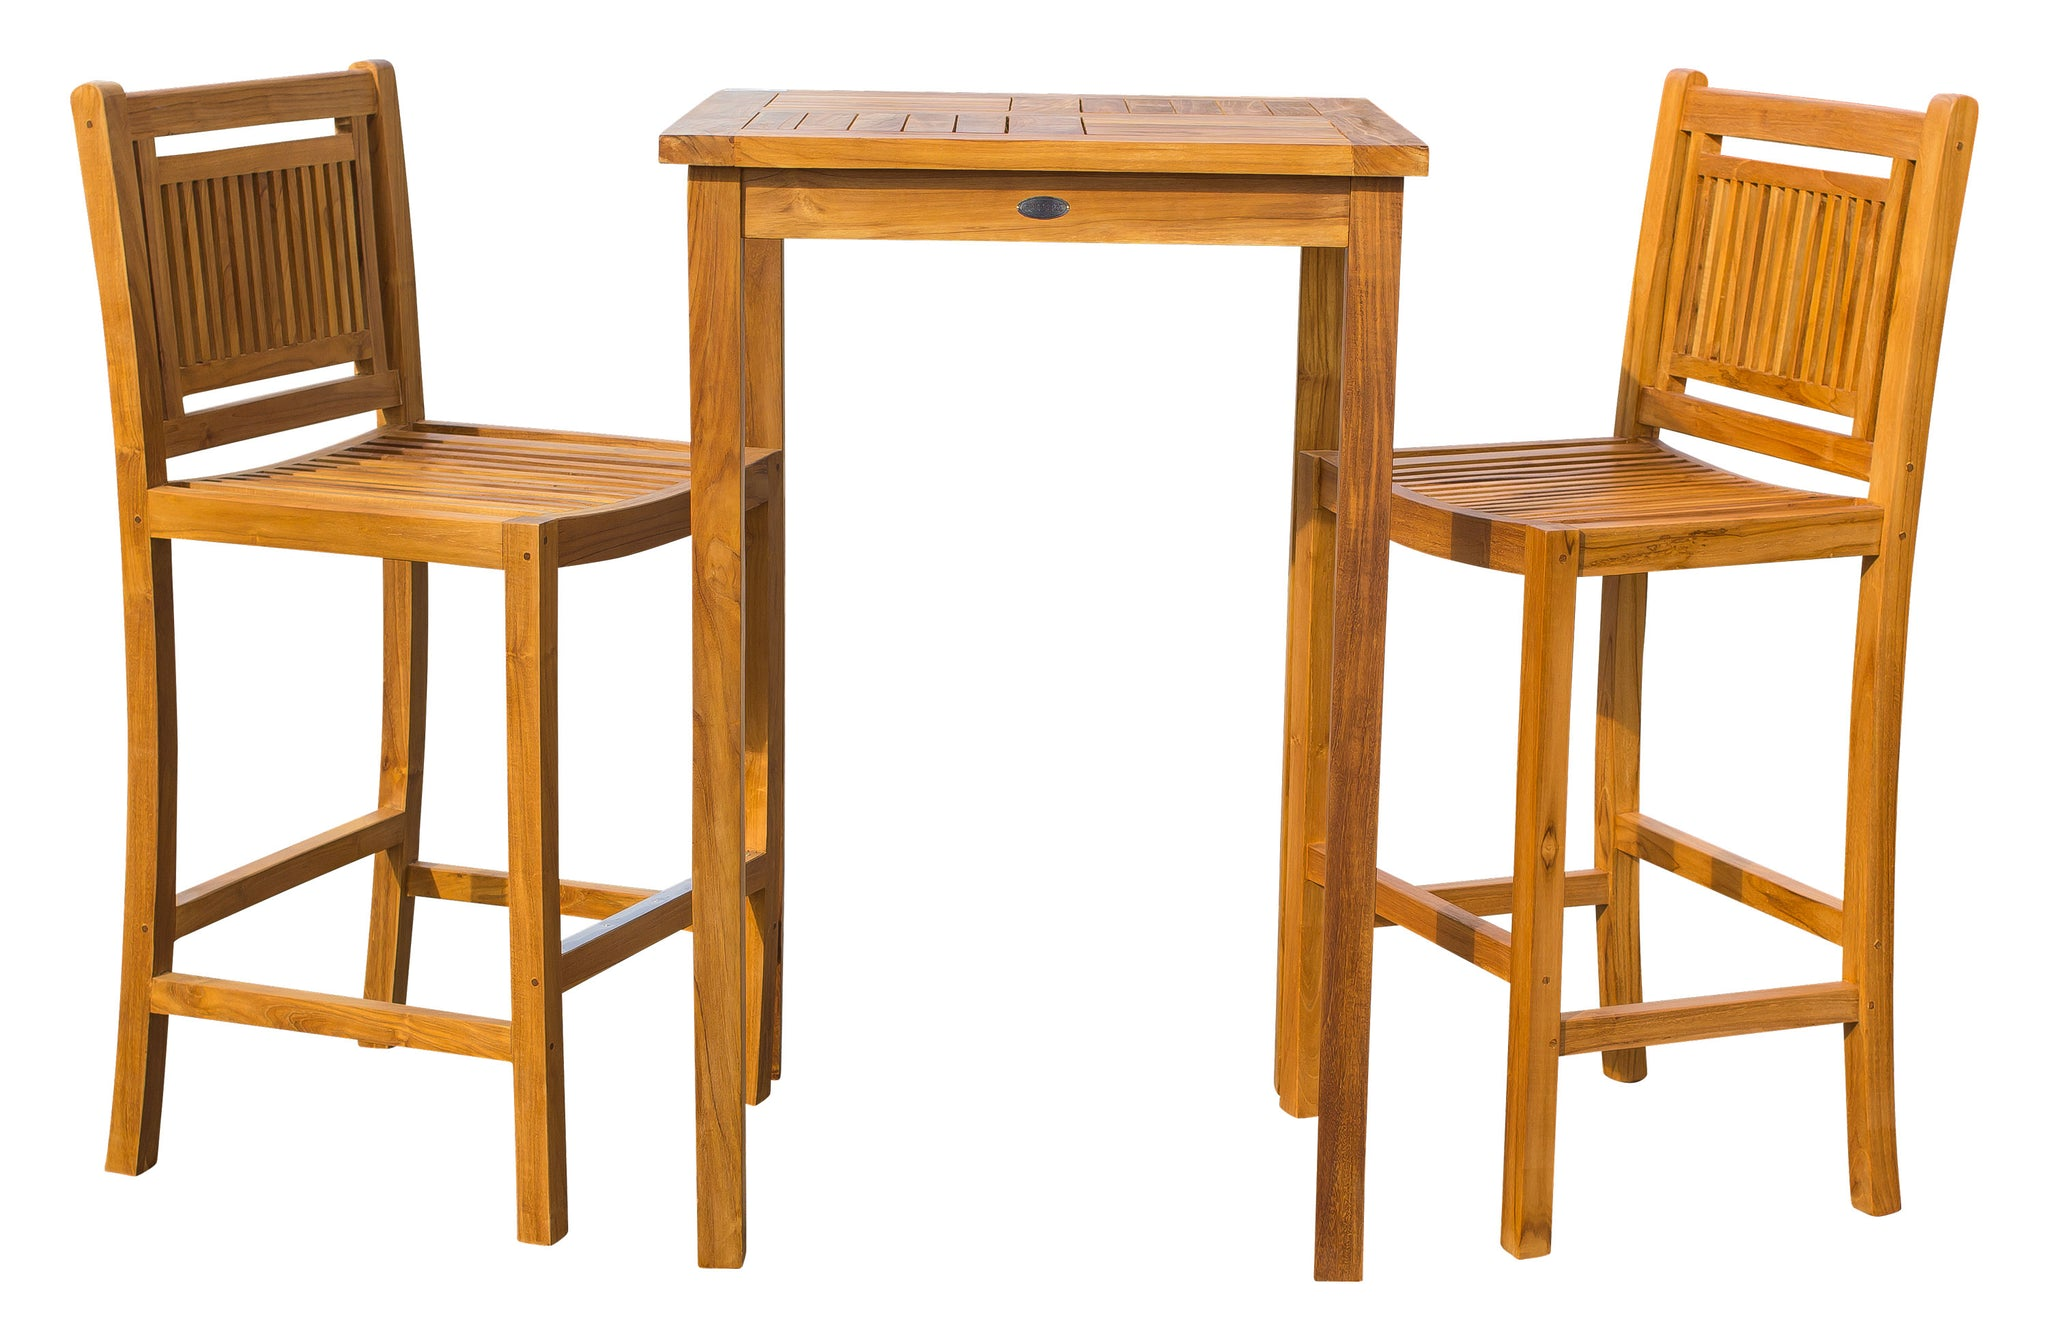 3 Piece Teak Wood Maldives Small Patio Bistro Bar Set With